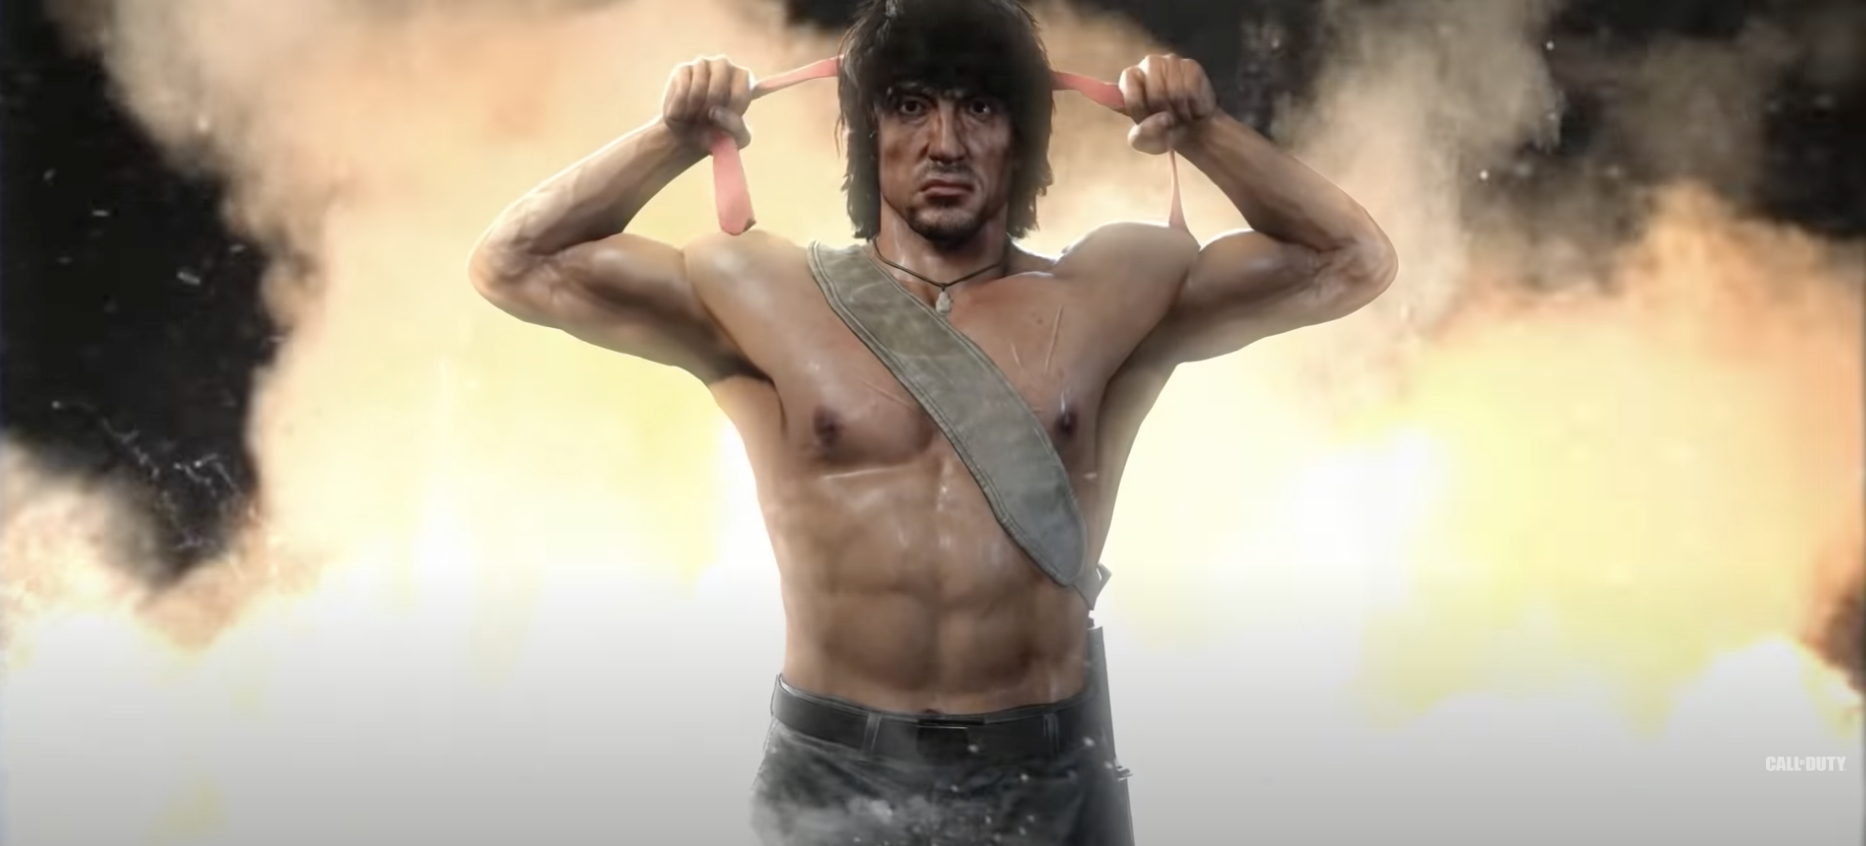 80s Action Heroes Rambo & John McClane Are Coming To 'Call of Duty' Games